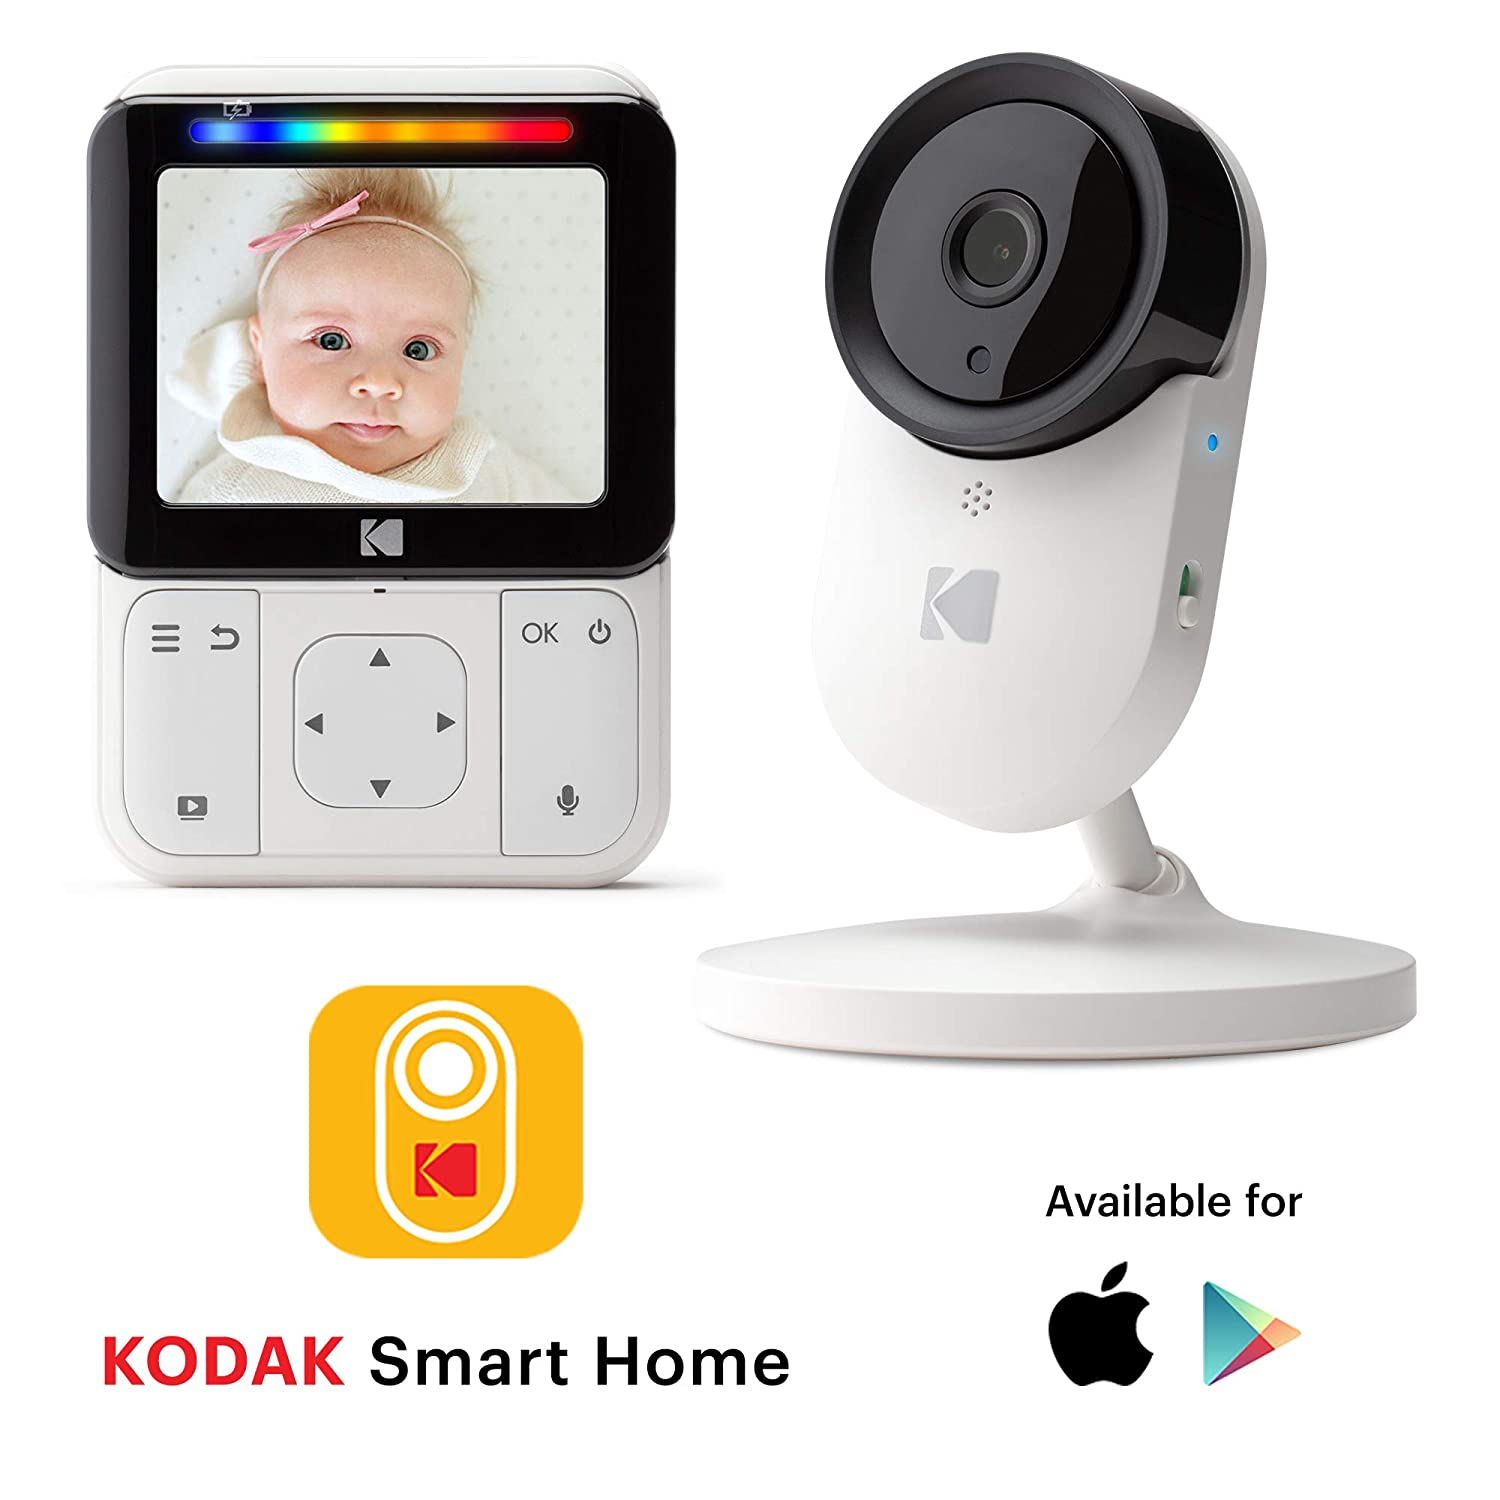 KODAK Cherish C520 Video Baby Monitor — 5 HD Screen & Mobile App, Hi-res Camera, Remote Zoom, Two-Way Audio, Night-Vision, Long Range and WiFi Cinatic Technology LTD